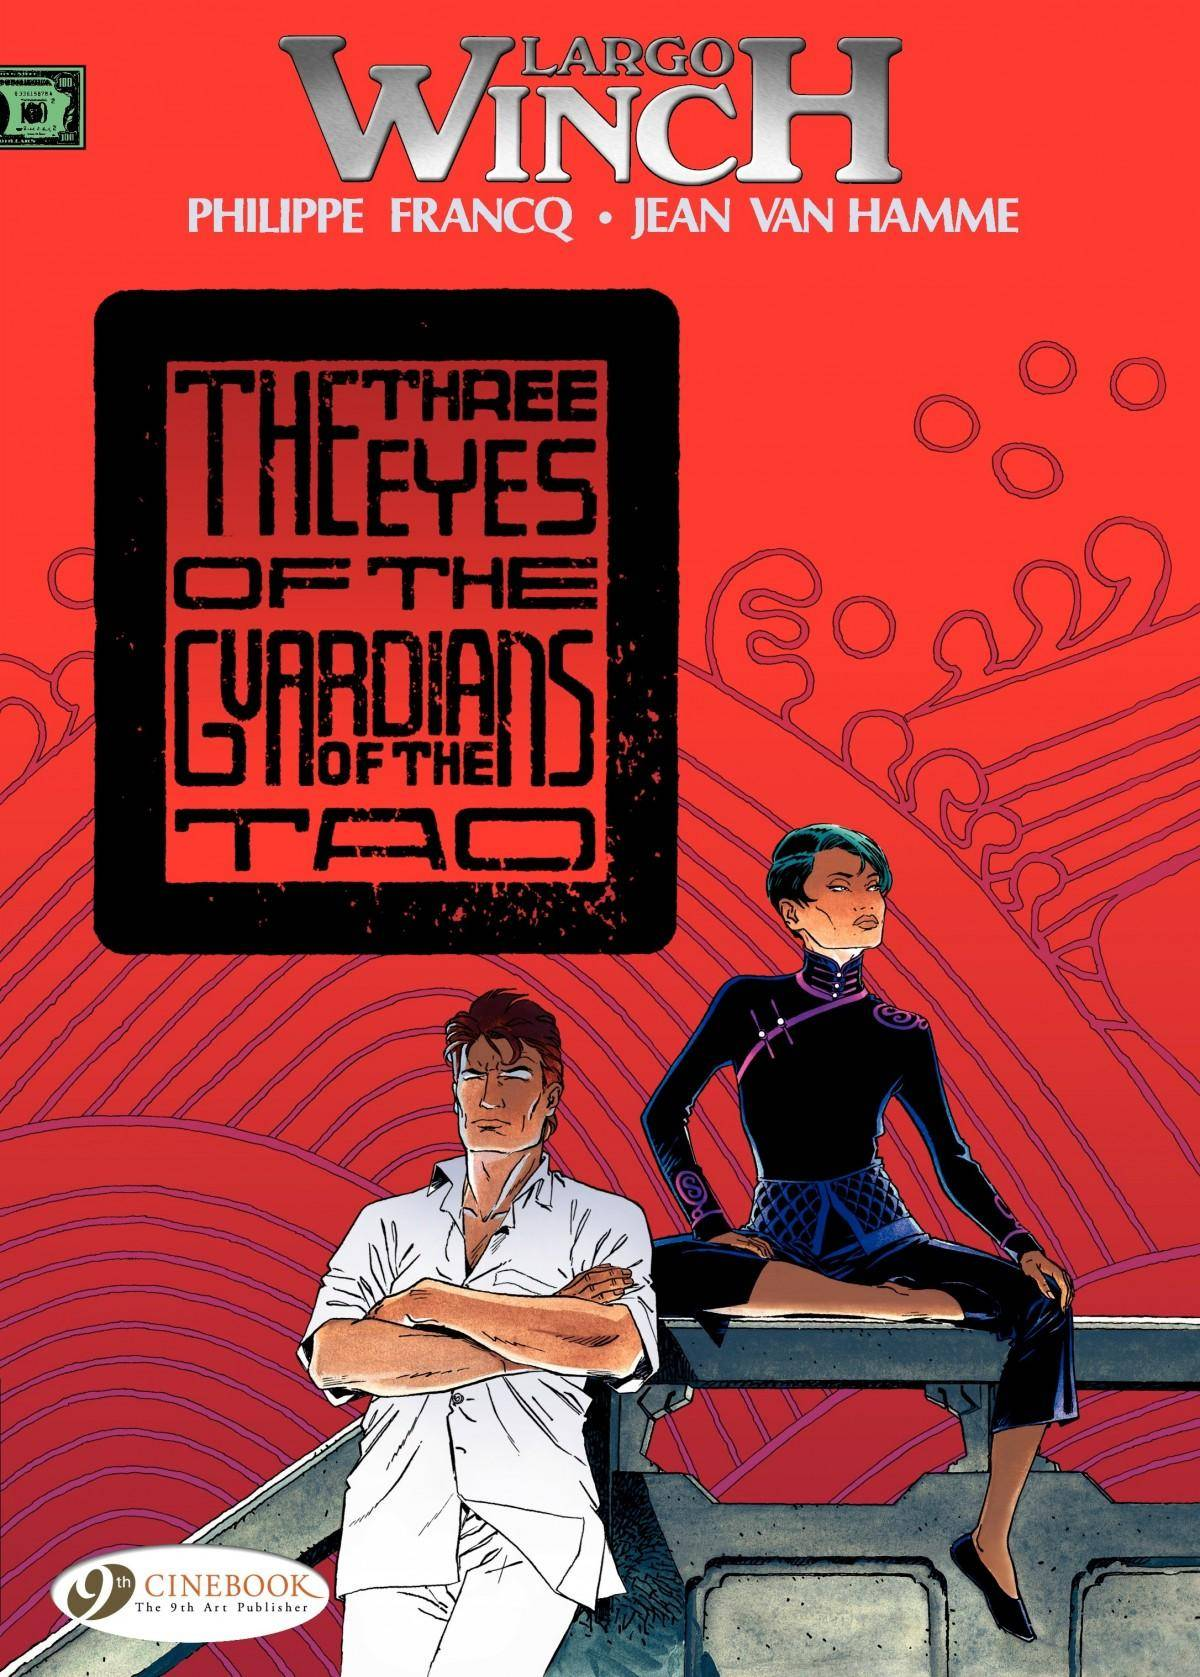 Largo Winch 011 - The Three Eyes of the Guardians of the Tao 2013 Cinebook digital